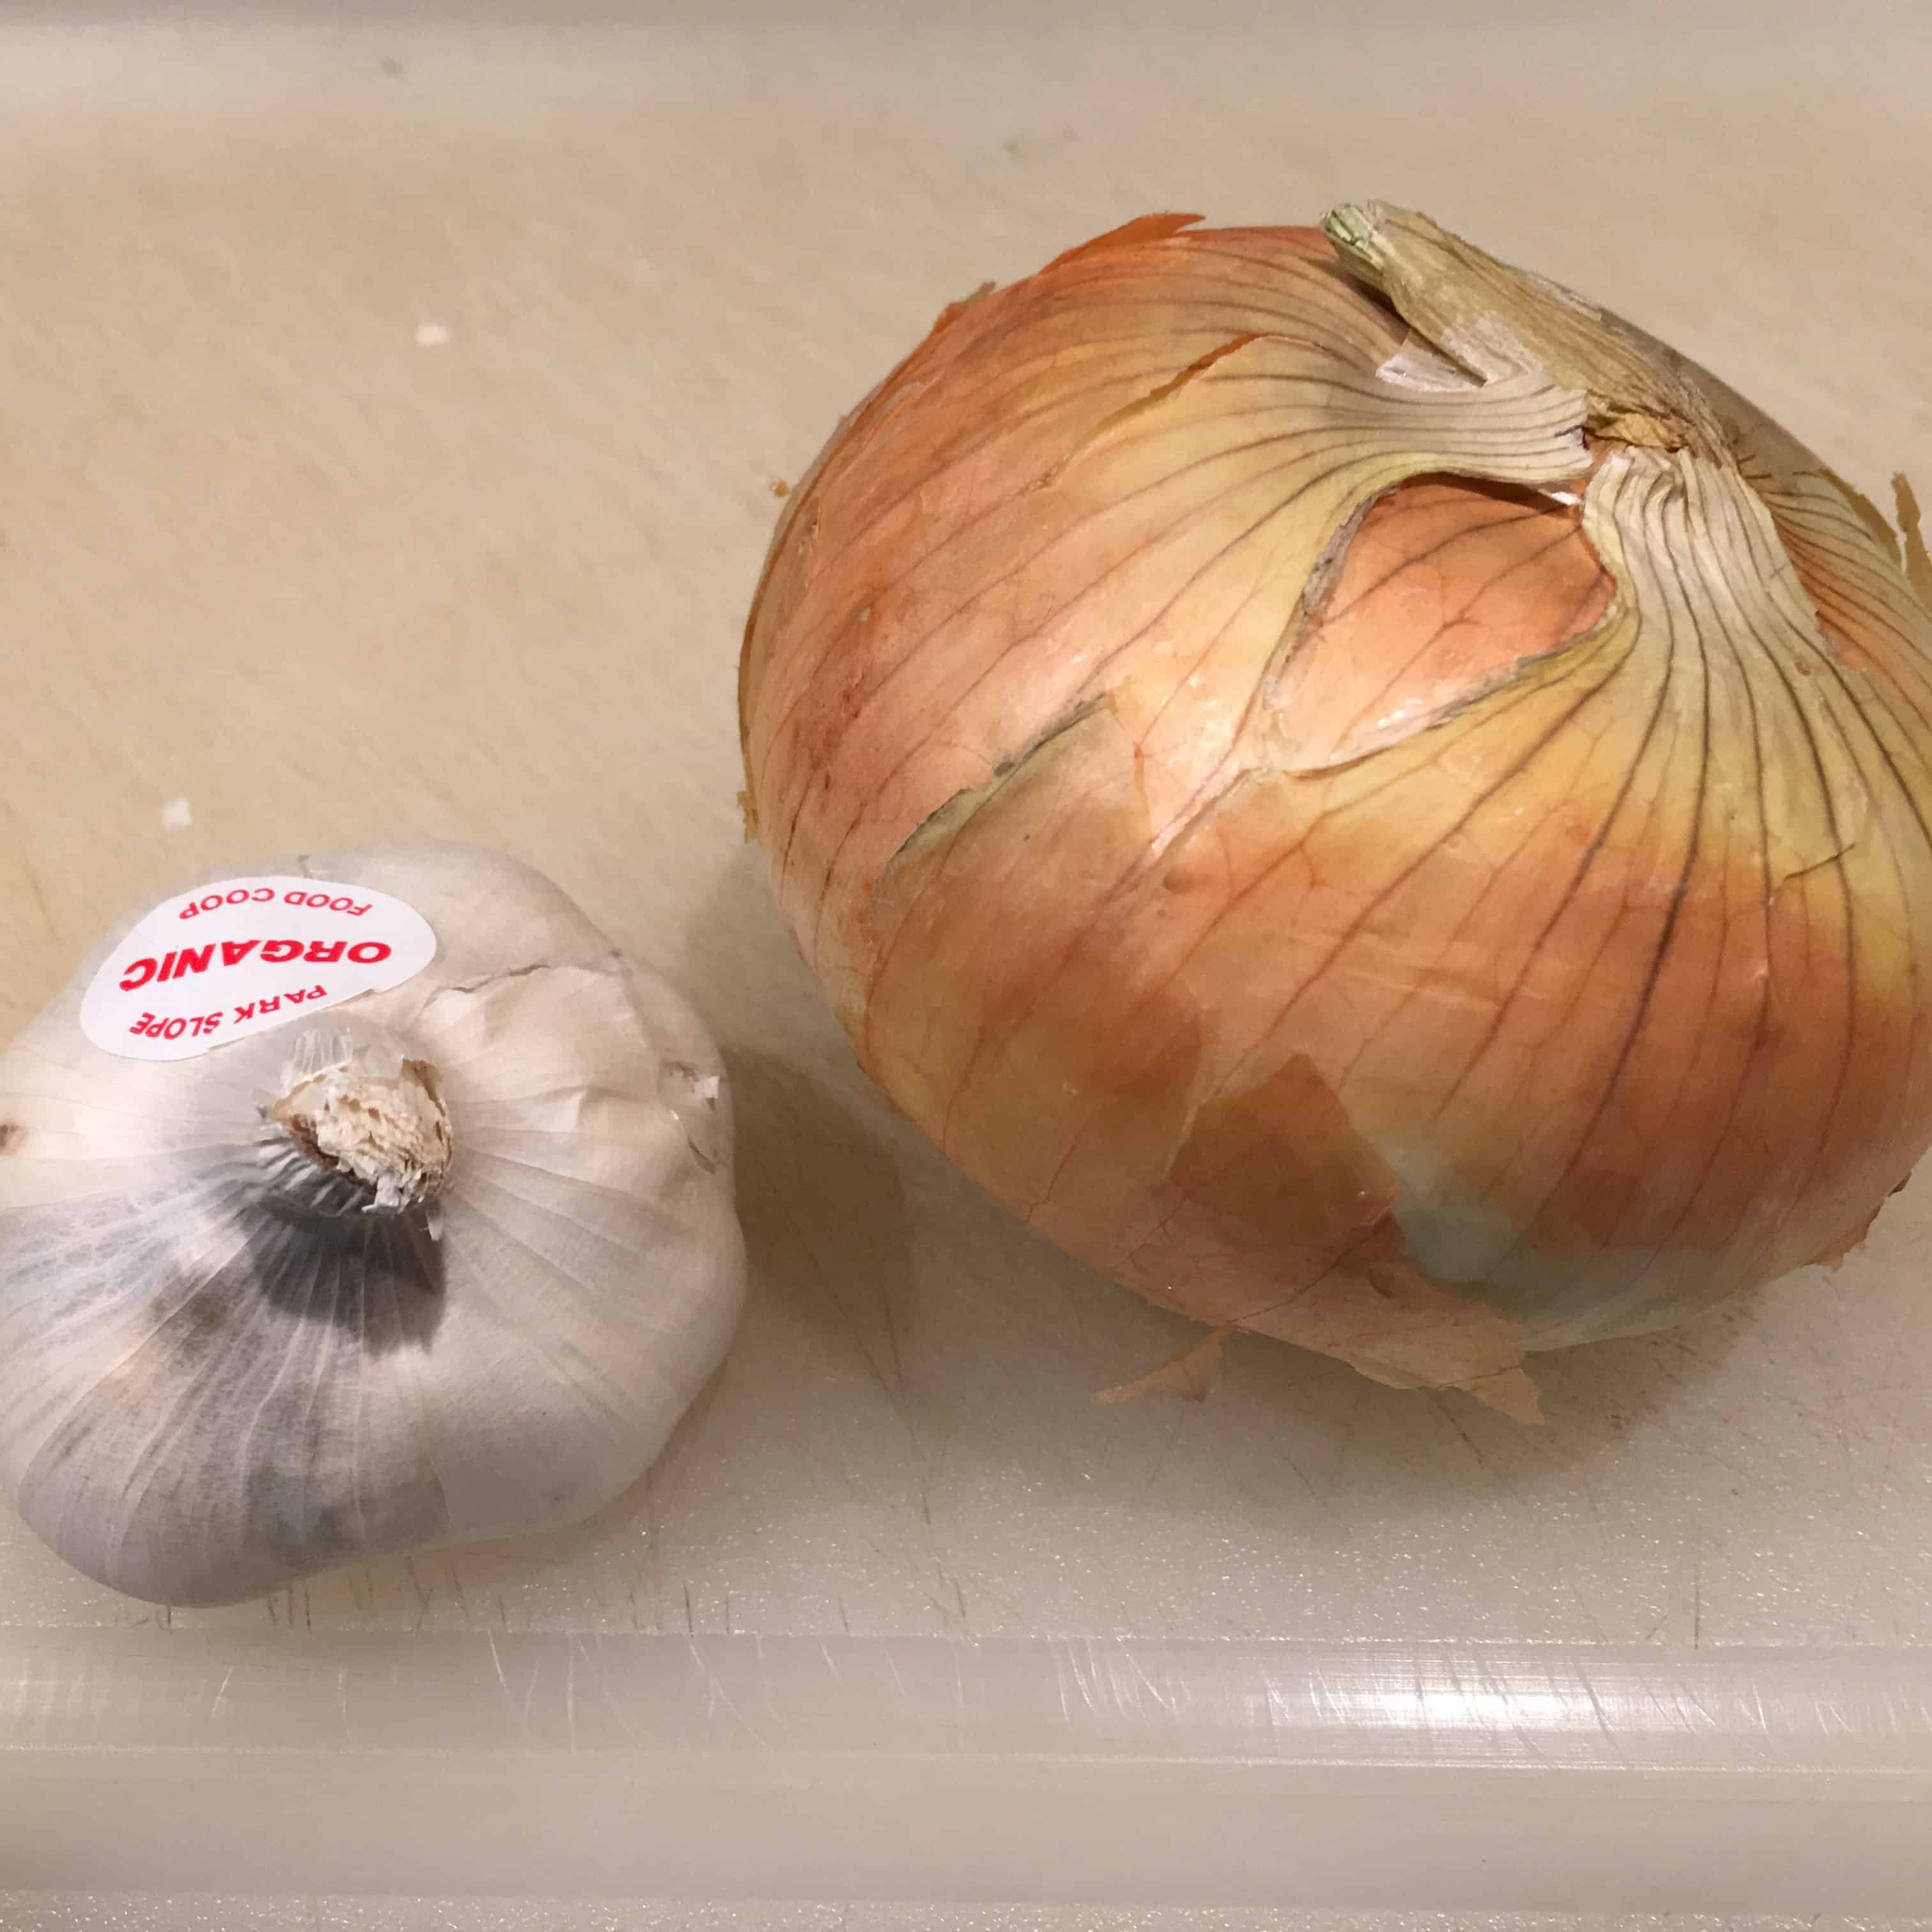 Recipe calls for two cloves garlic and one onion, both to be chopped.